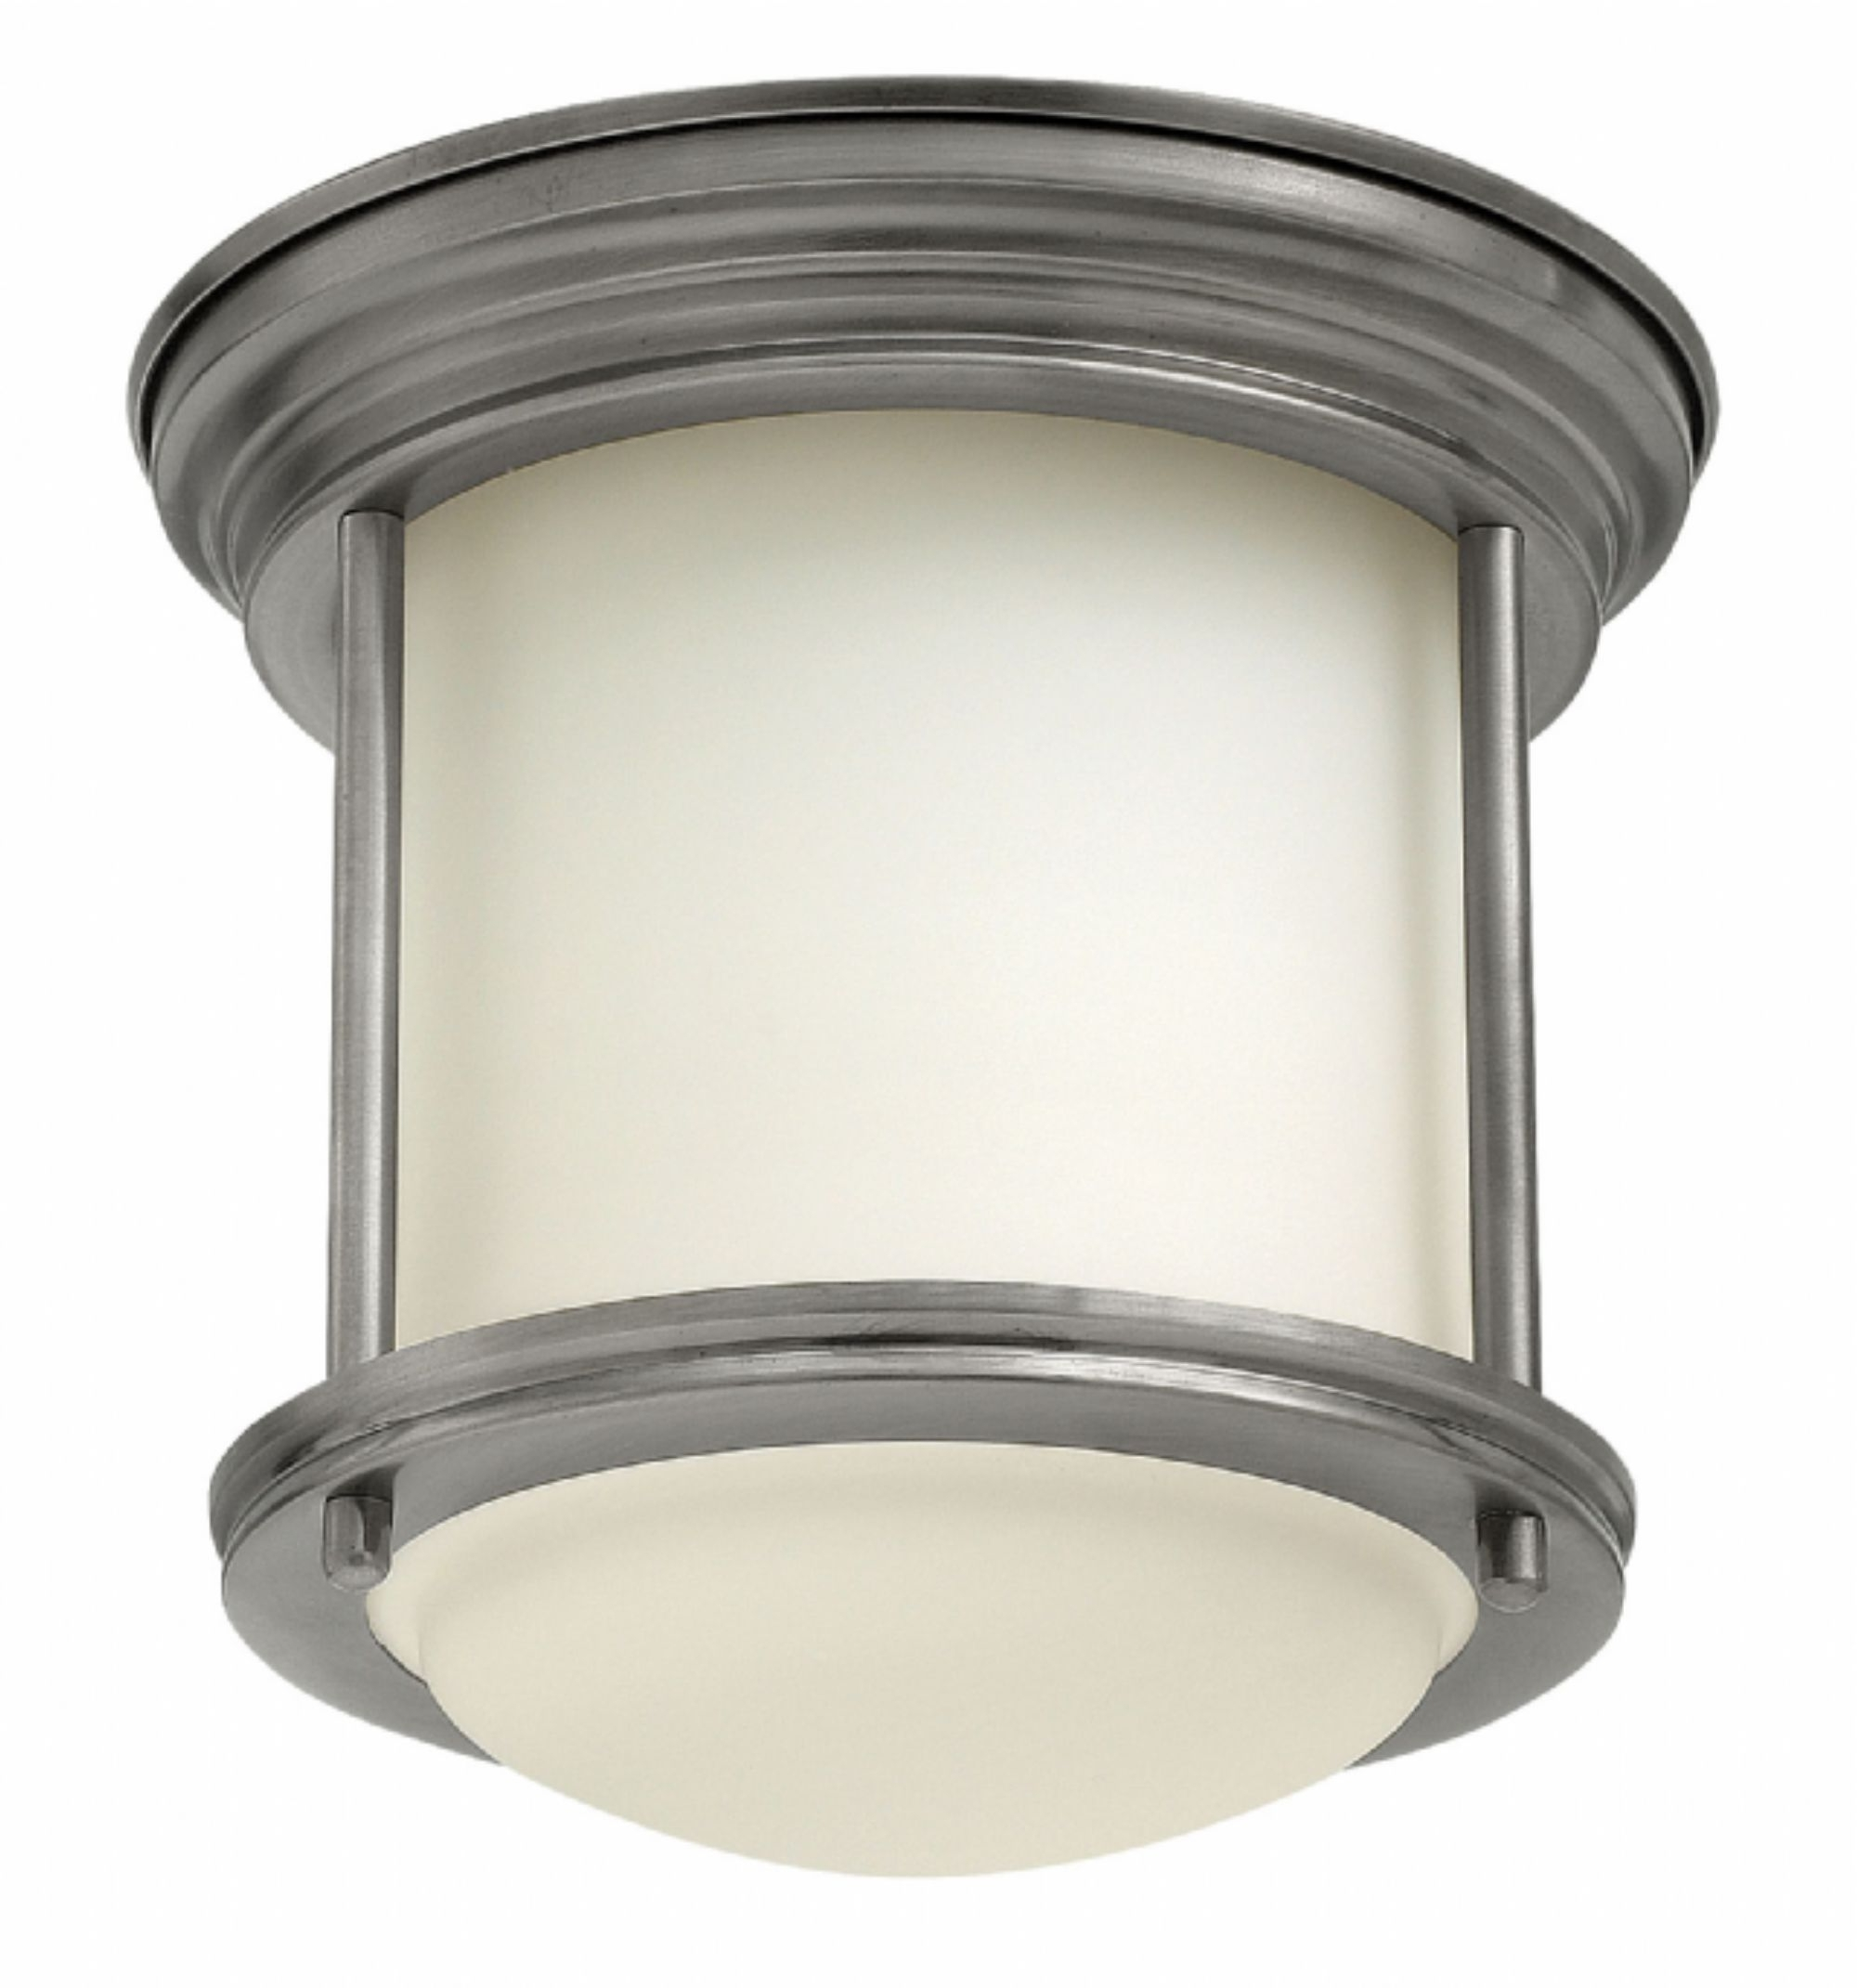 Flush Mount Hinkley Lighting With Regard To Well Liked Antique Nickel Hadley > Interior Ceiling Mount (View 16 of 20)